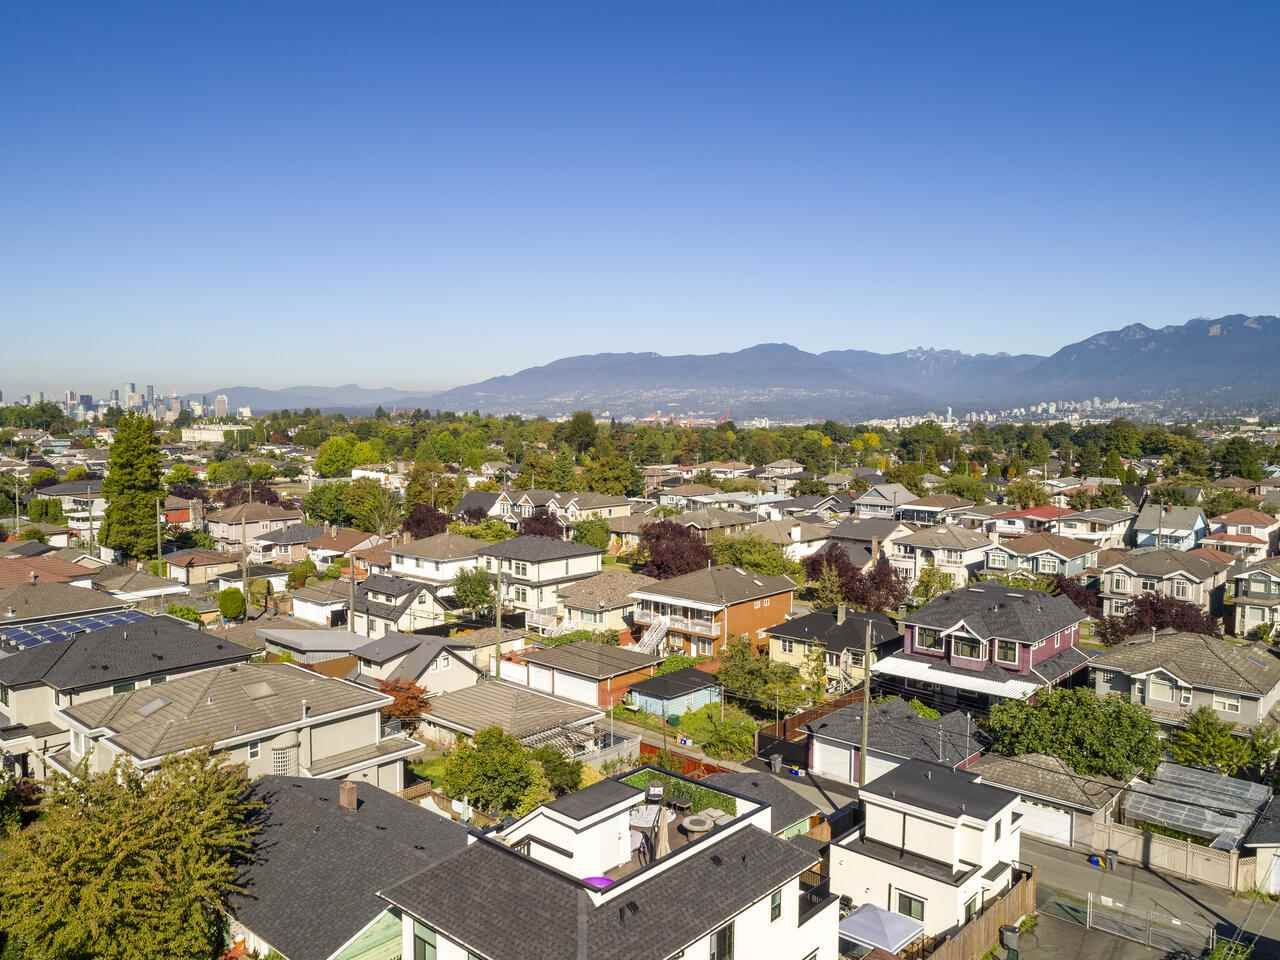 """Photo 4: Photos: 2796 E 4TH Avenue in Vancouver: Renfrew VE House for sale in """"Renfrew Heights"""" (Vancouver East)  : MLS®# R2496647"""